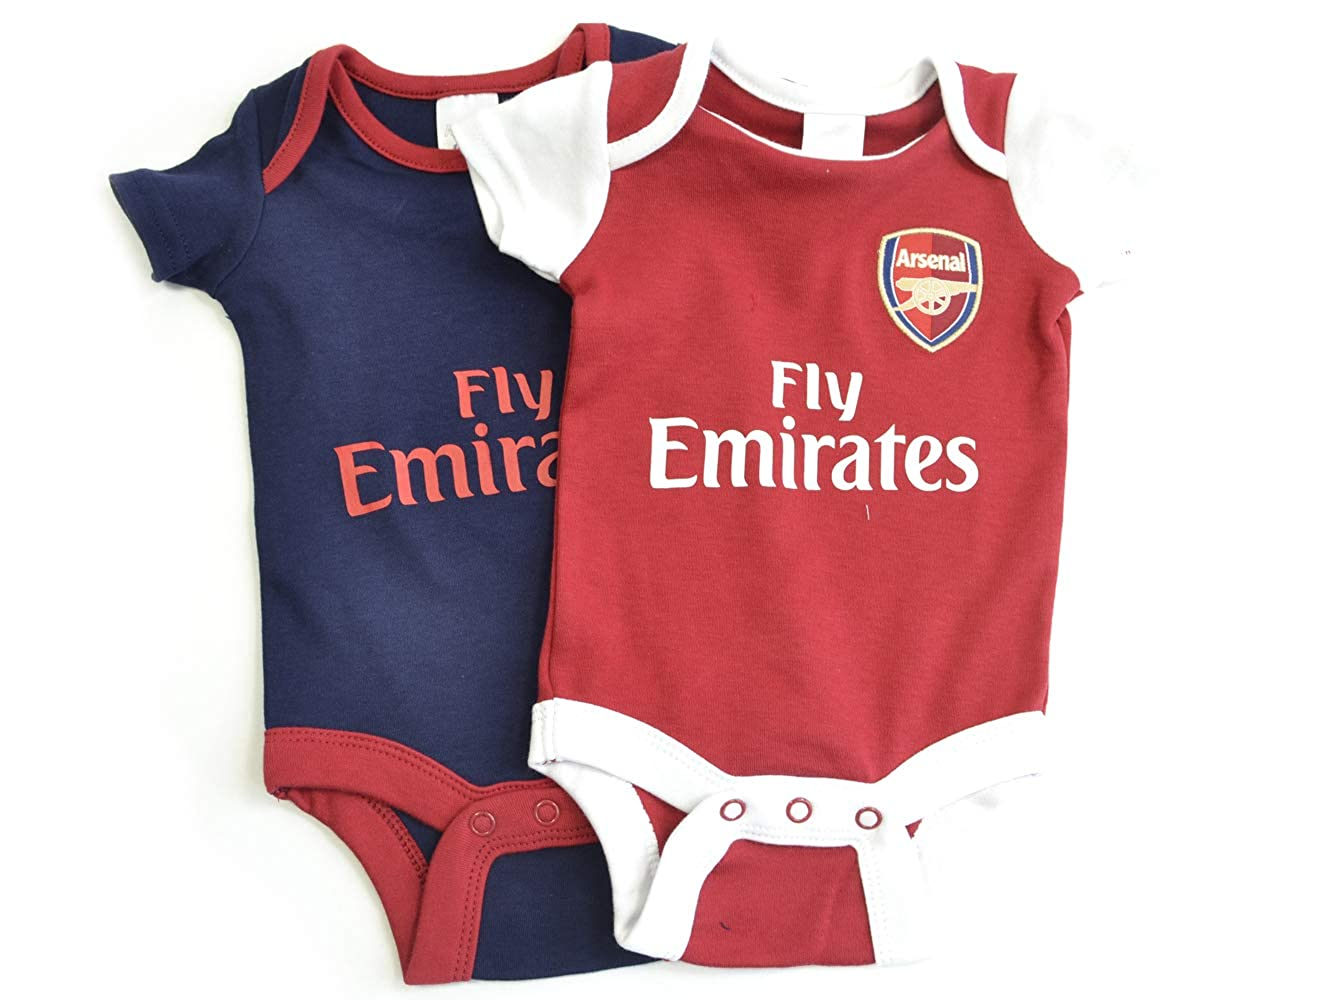 Baby Footwear 0-3 Months - Novelty Baby Football Gift Ideas Official Arsenal FC Baby Crib Boots